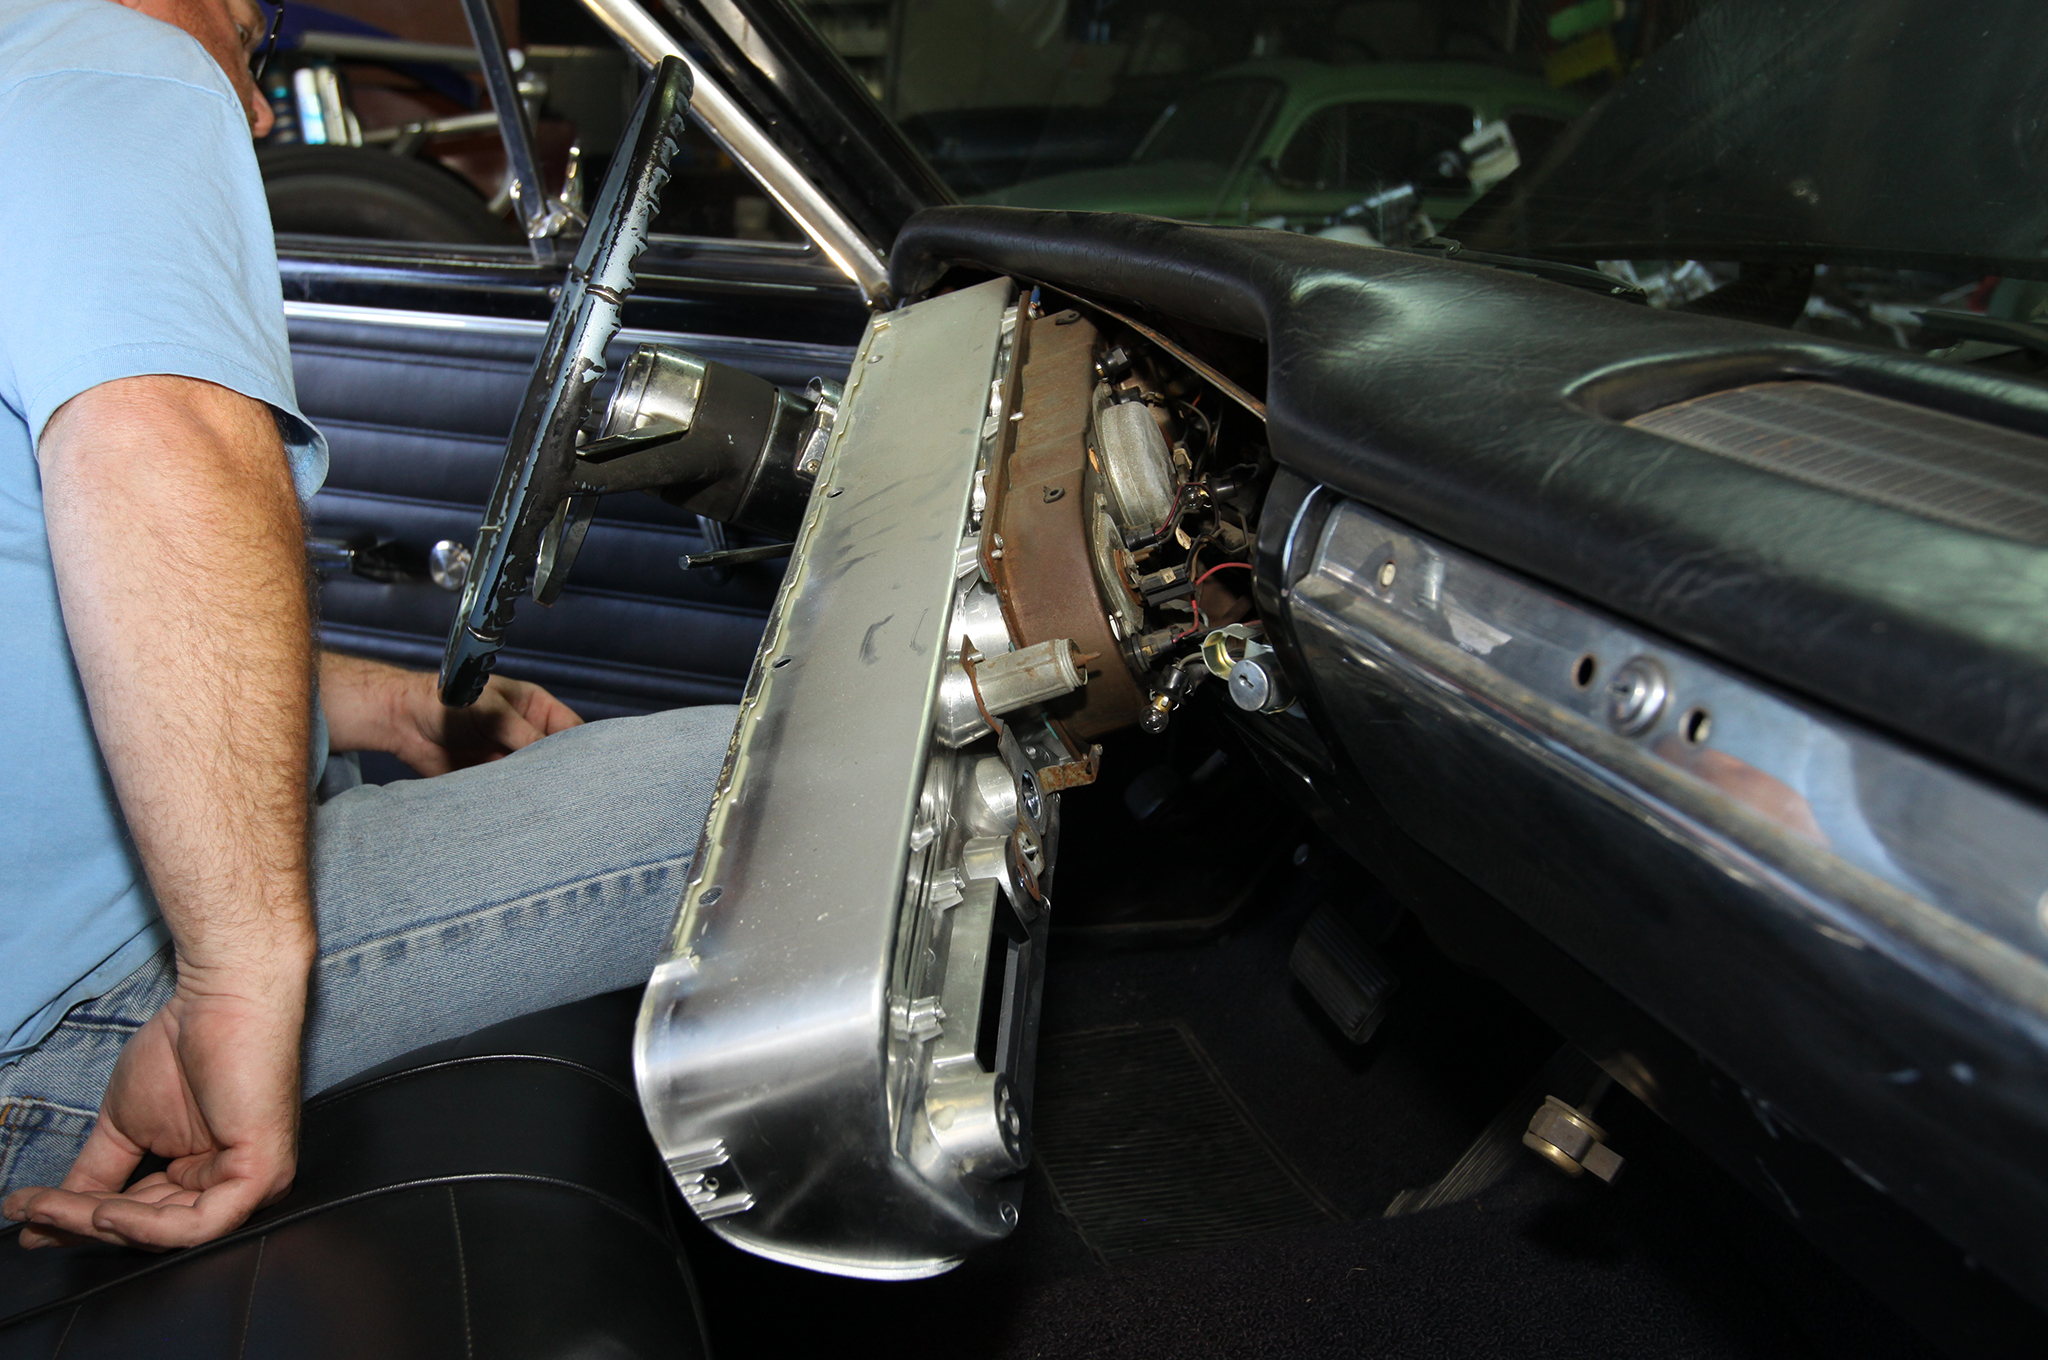 How To Install Analog Dashboard Gauges On A 1965 Chevelle Hot Rod 69 Wiring Harness Network